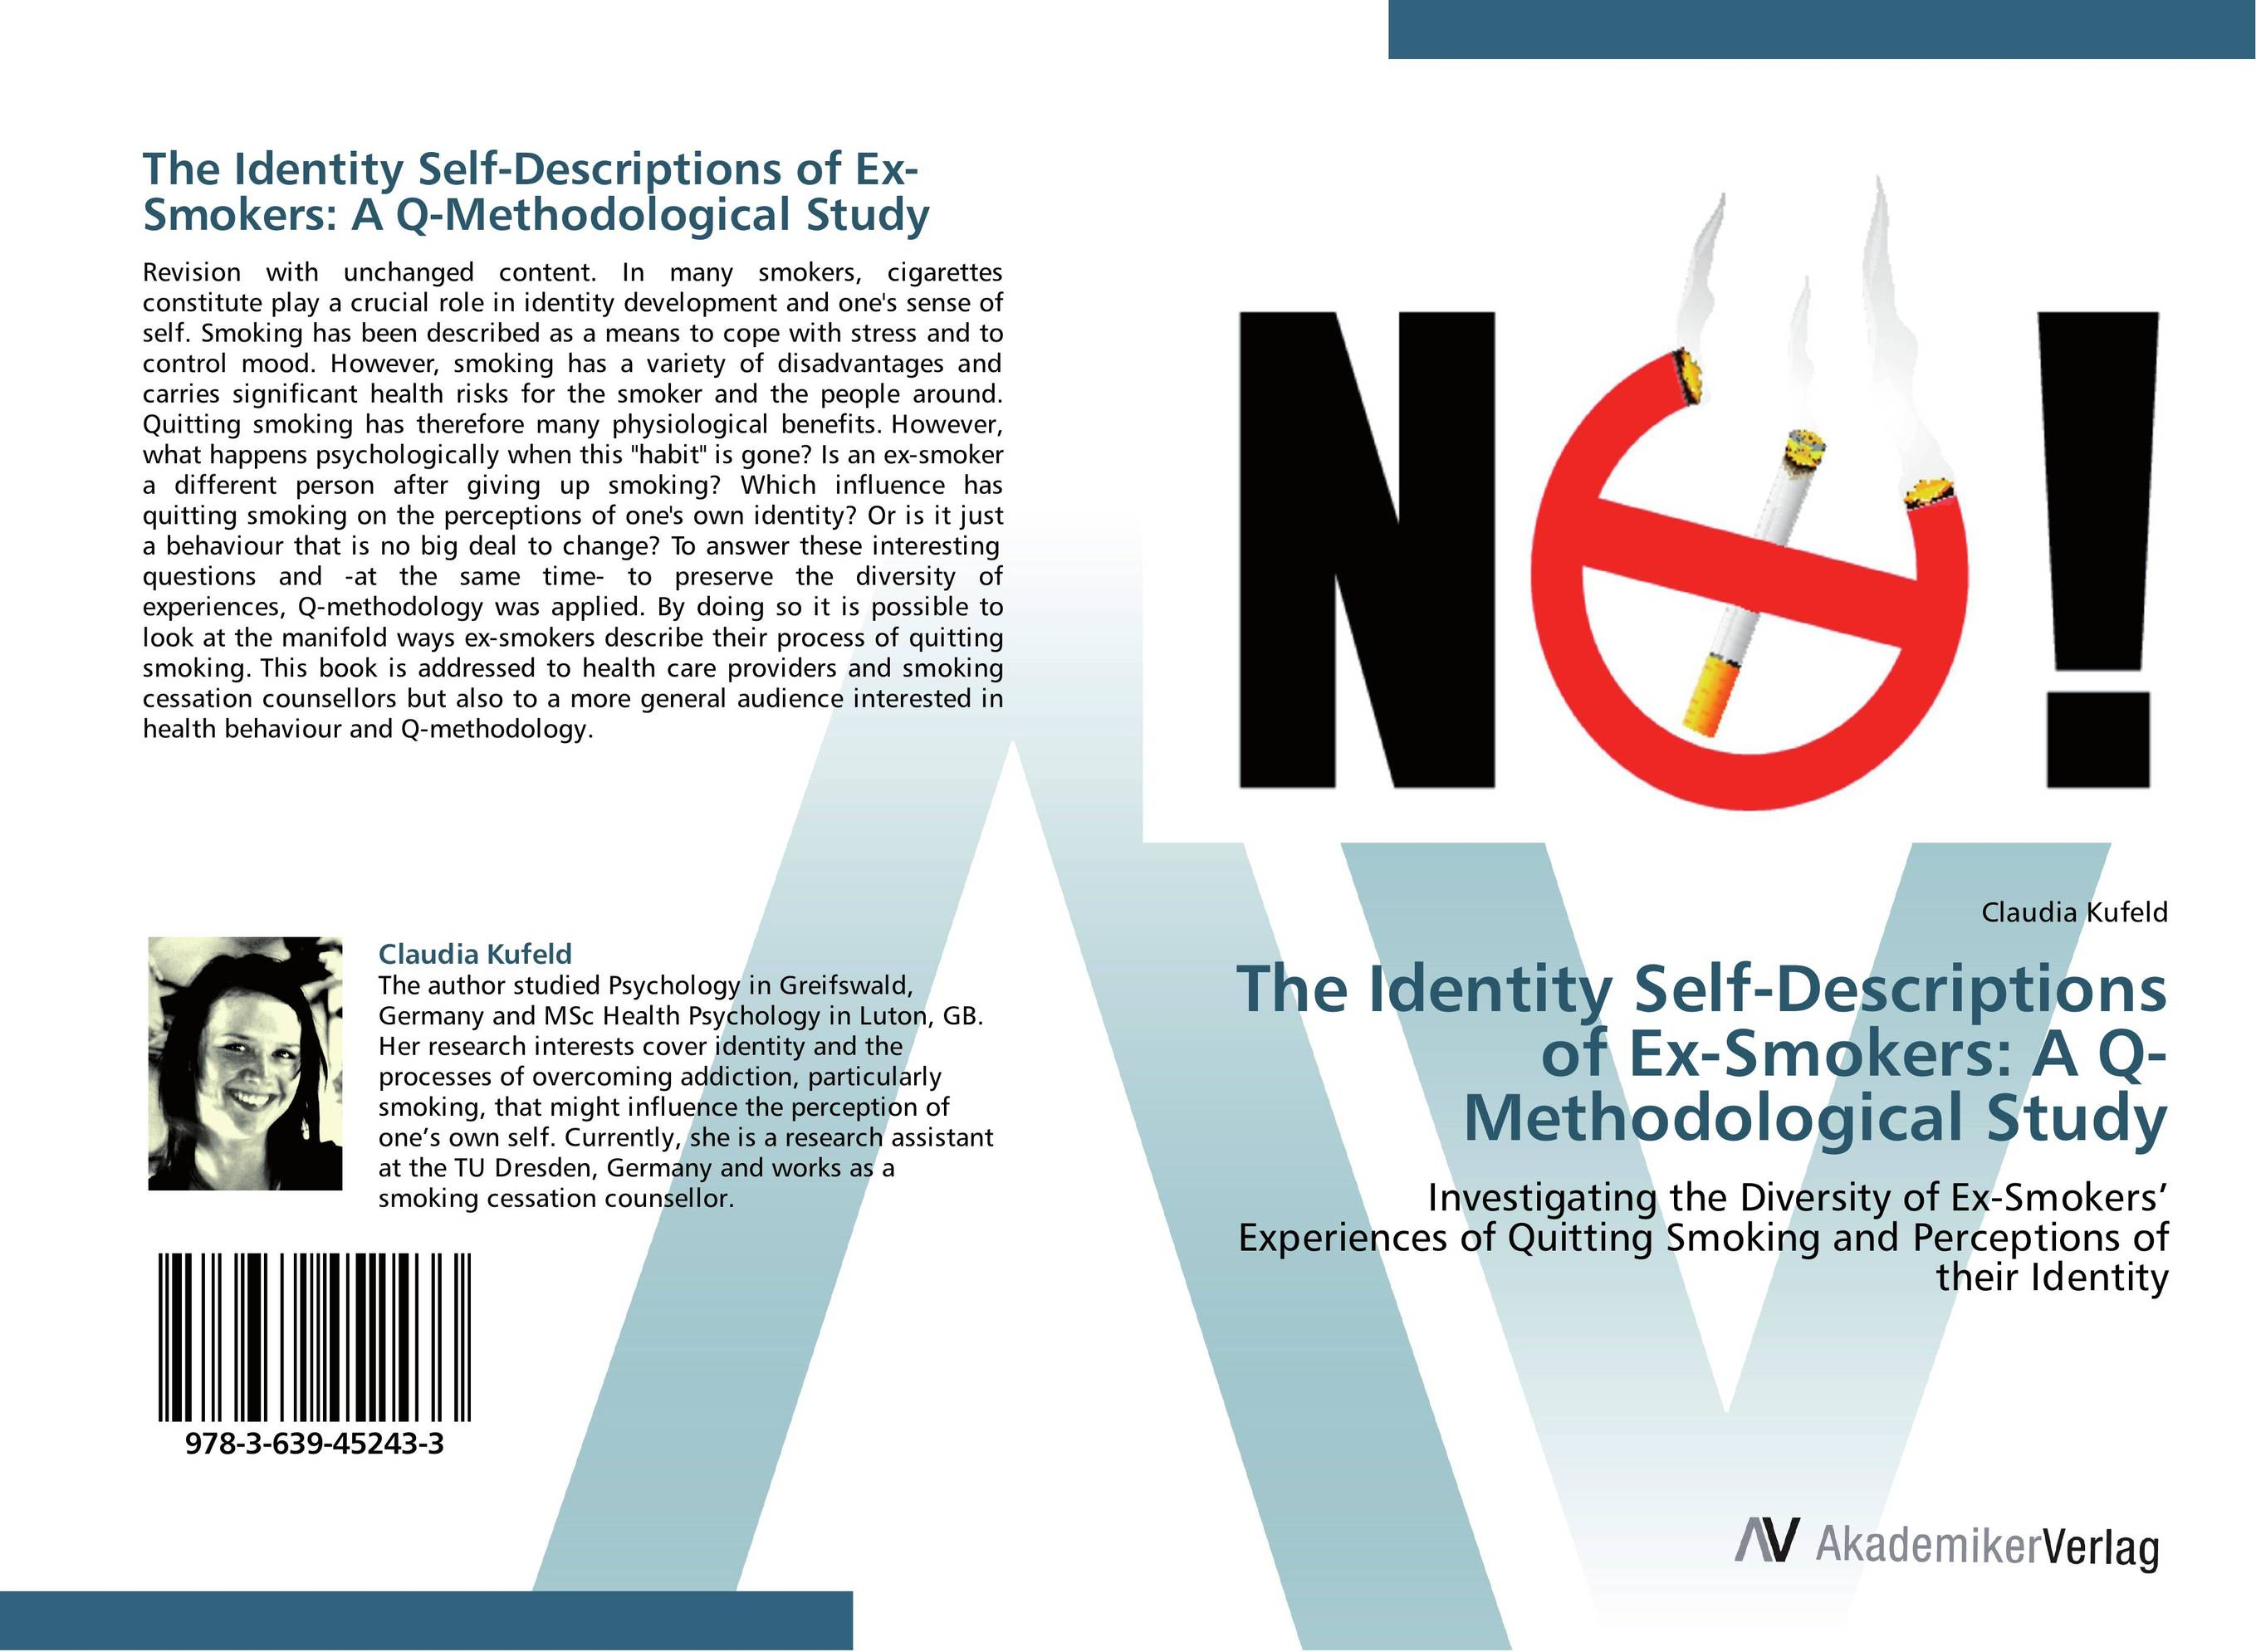 The Identity Self-Descriptions of Ex-Smokers: A Q-Methodological Study цена